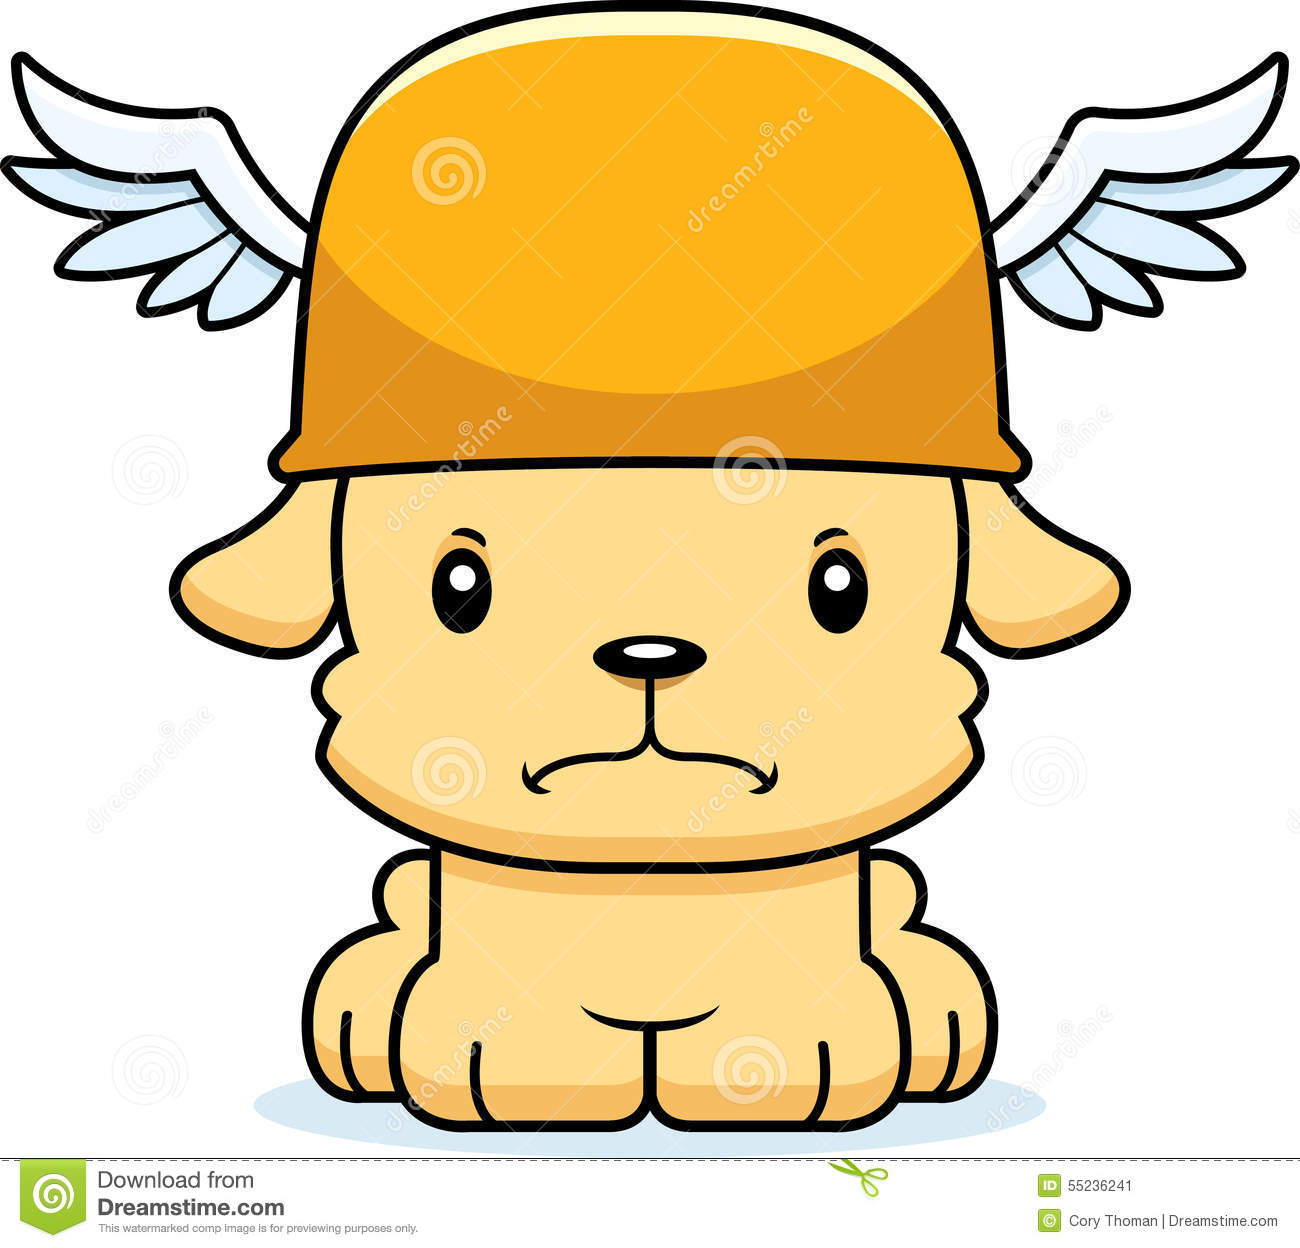 Cartoon Angry Hermes Puppy Stock Vector - Image: 55236241